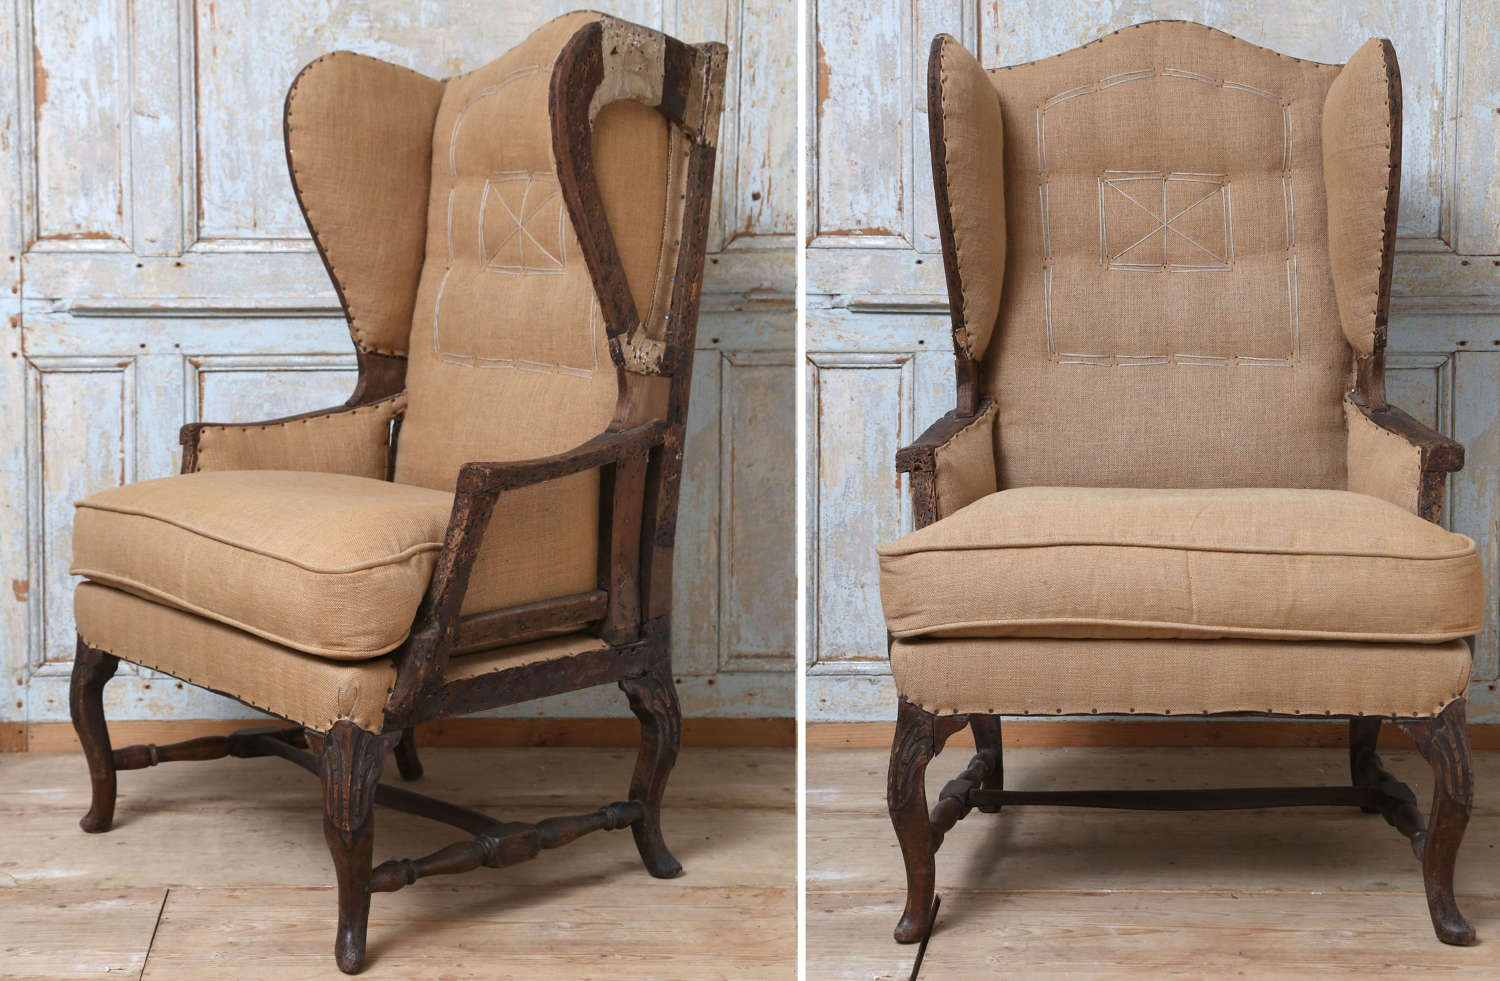 French 19th century high Wingback armchair